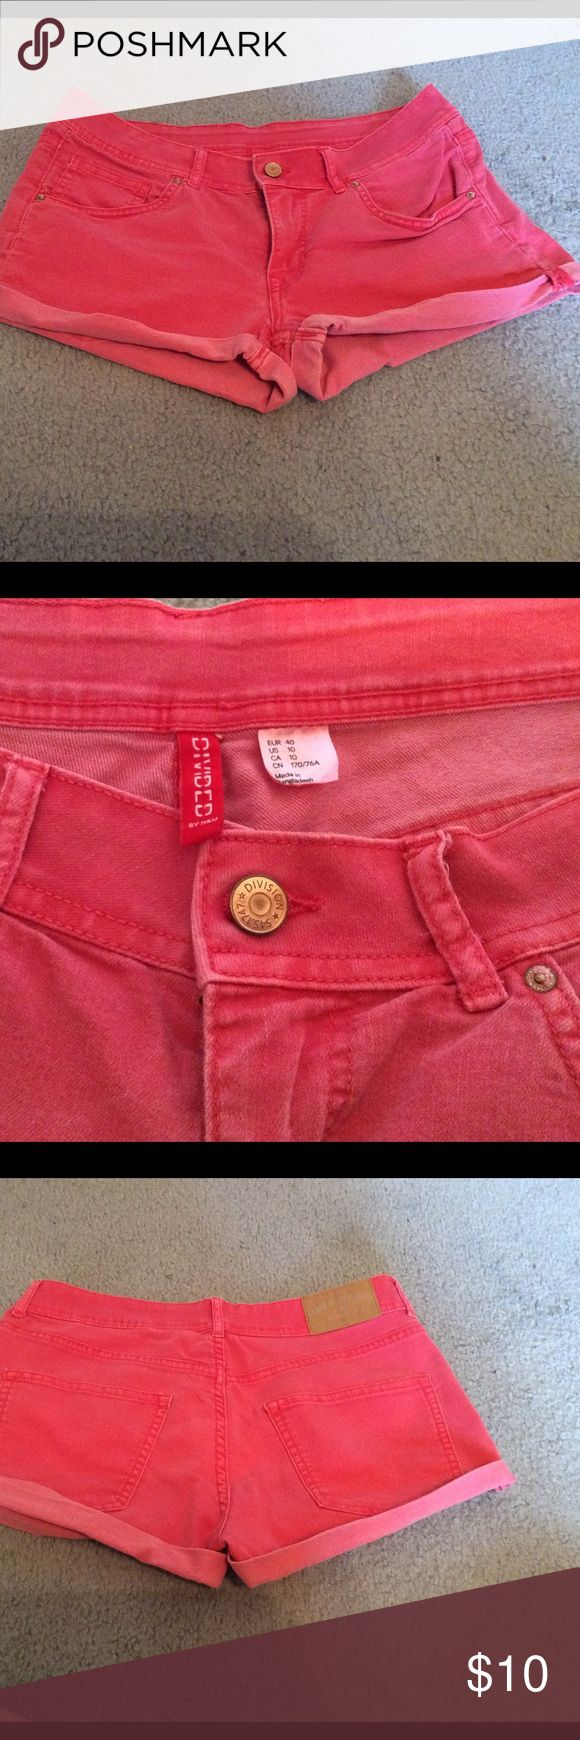 H&M Coral Jean Shorts Like new coral colored jean shorts. Brand is Divided by H&M. H&M Shorts Jean Shorts